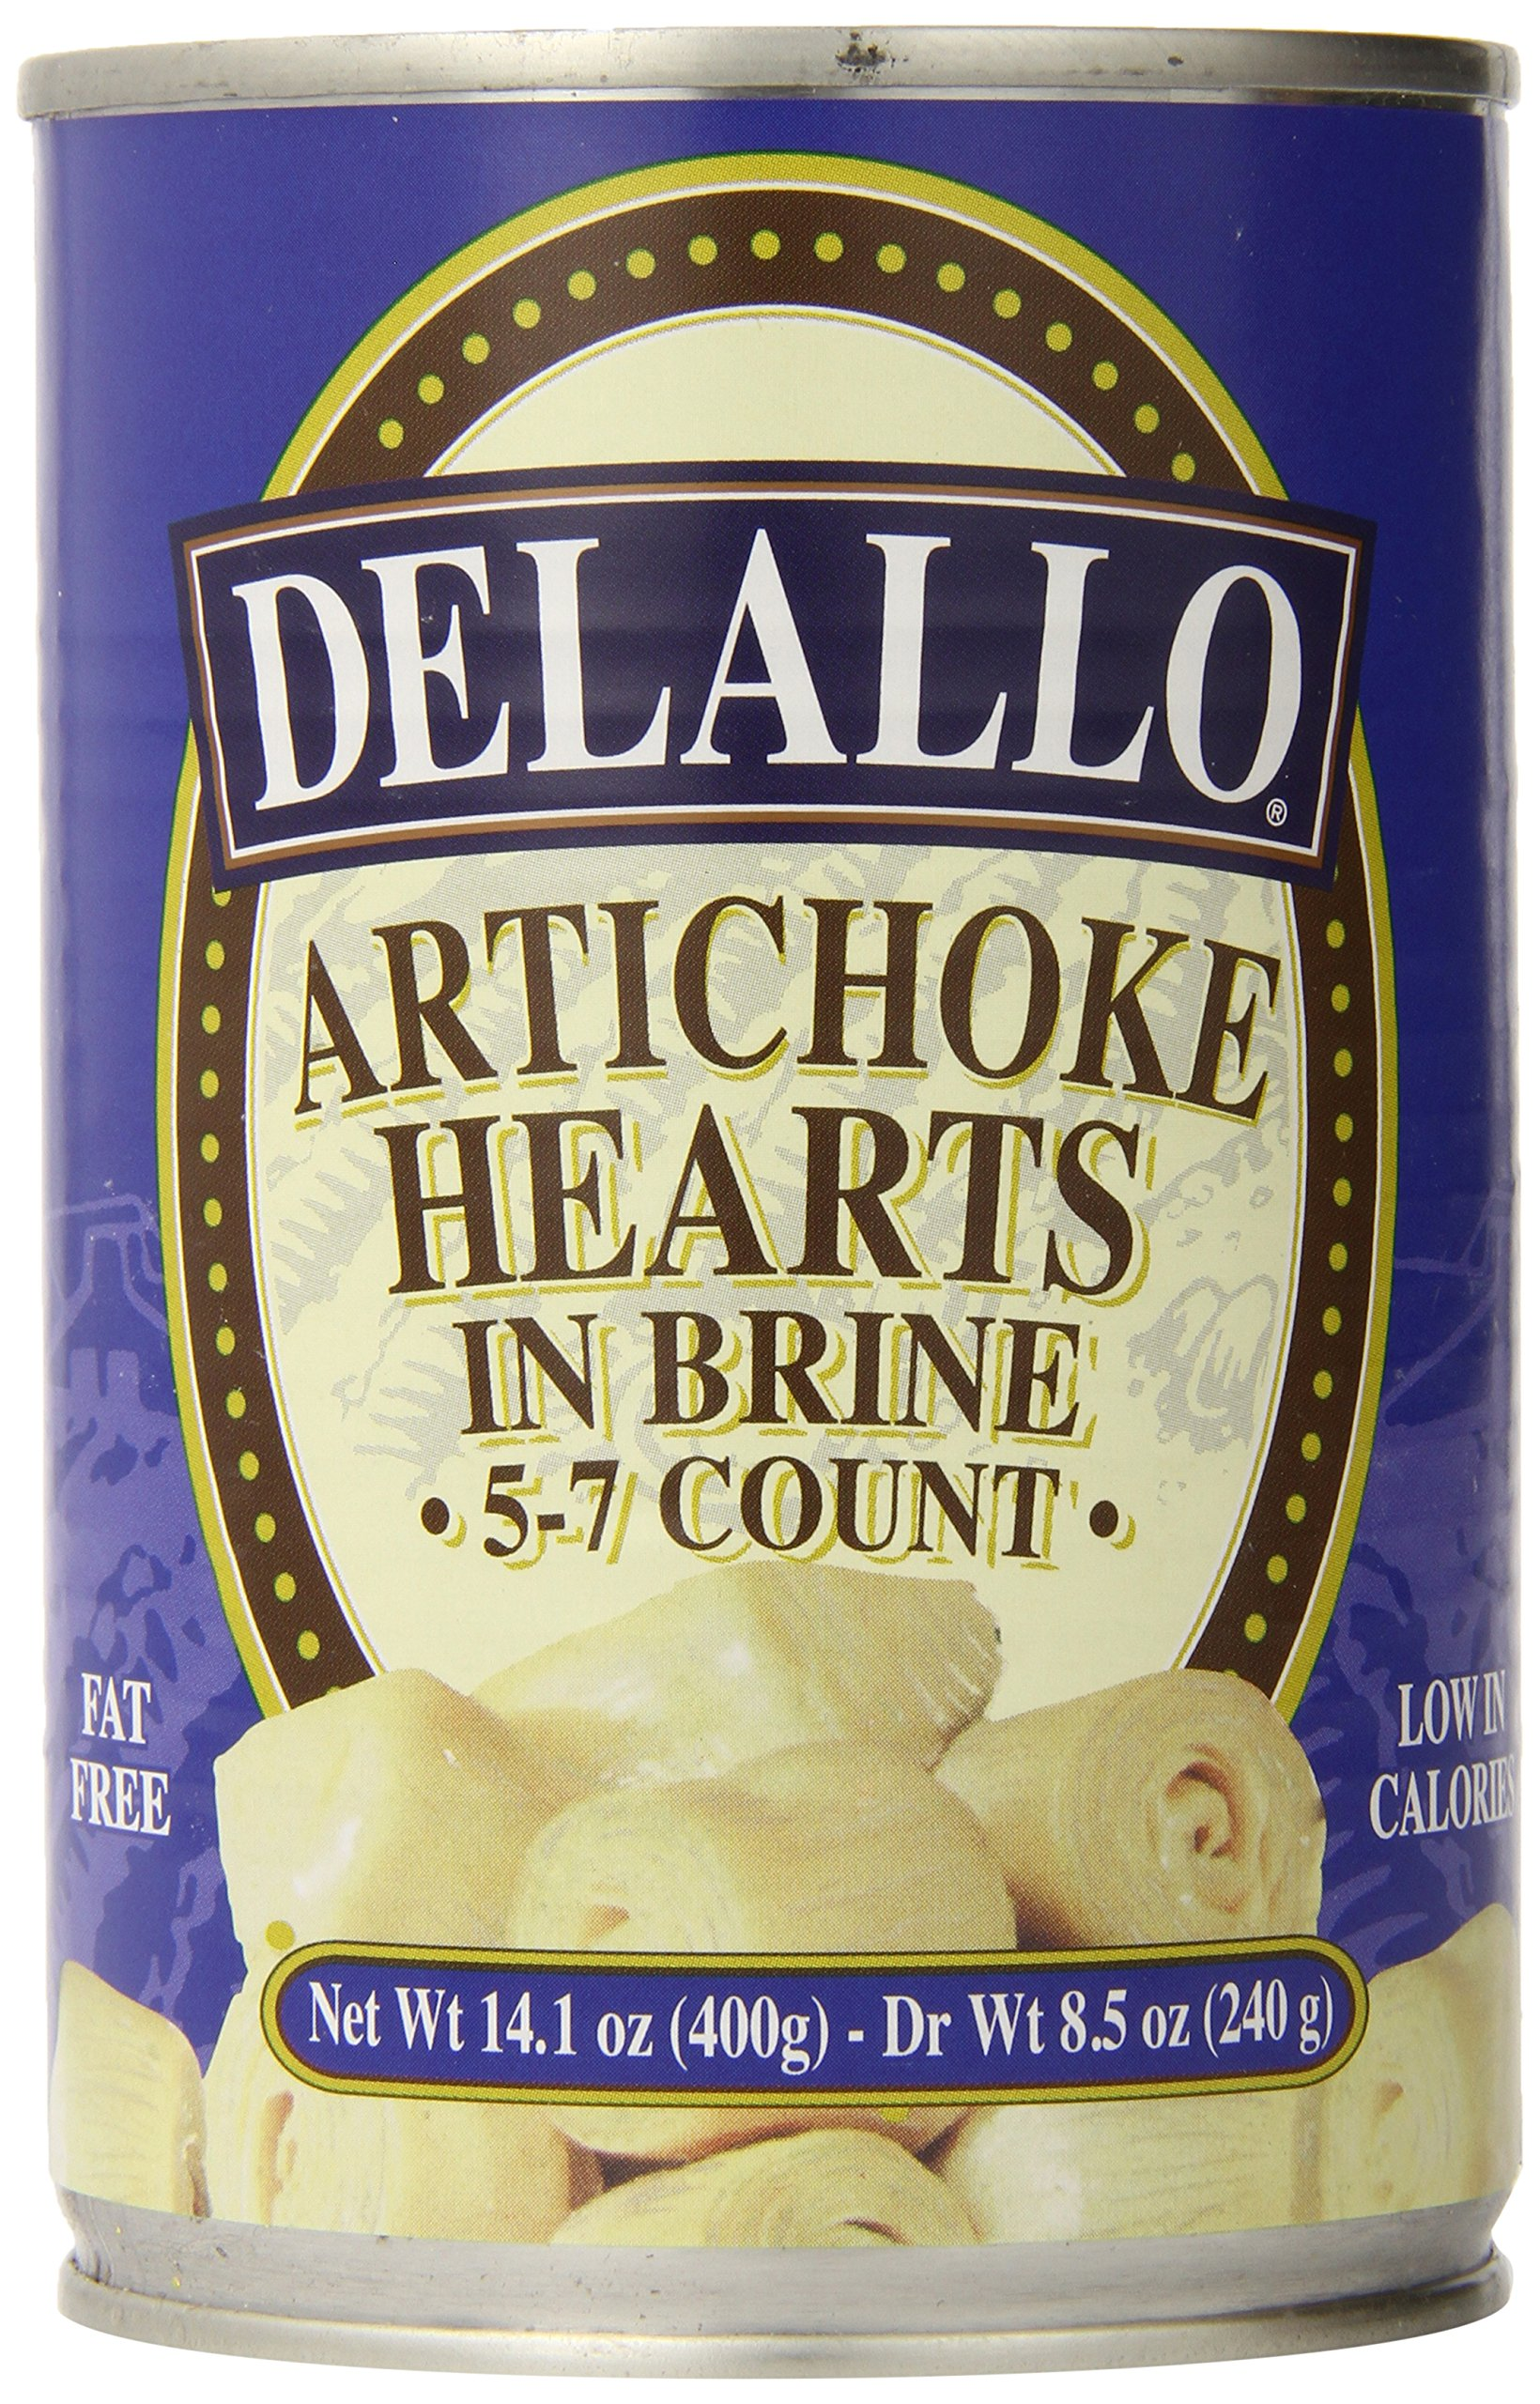 DeLallo Artichoke Hearts, Net Wt. 14.1 Unit (Pack of 6)